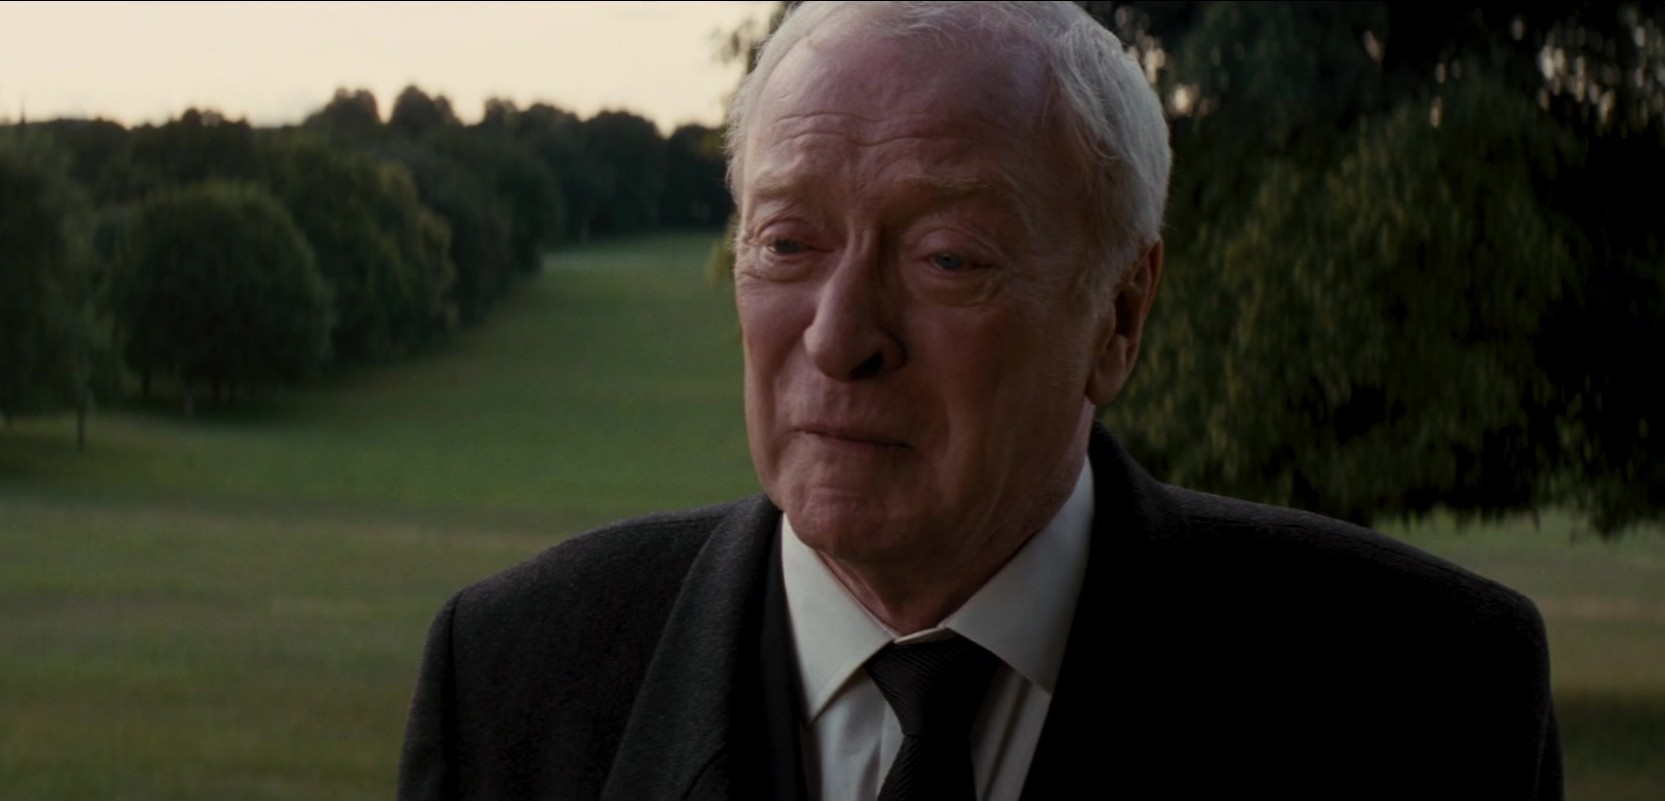 Image result for the dark knight rises alfred crying